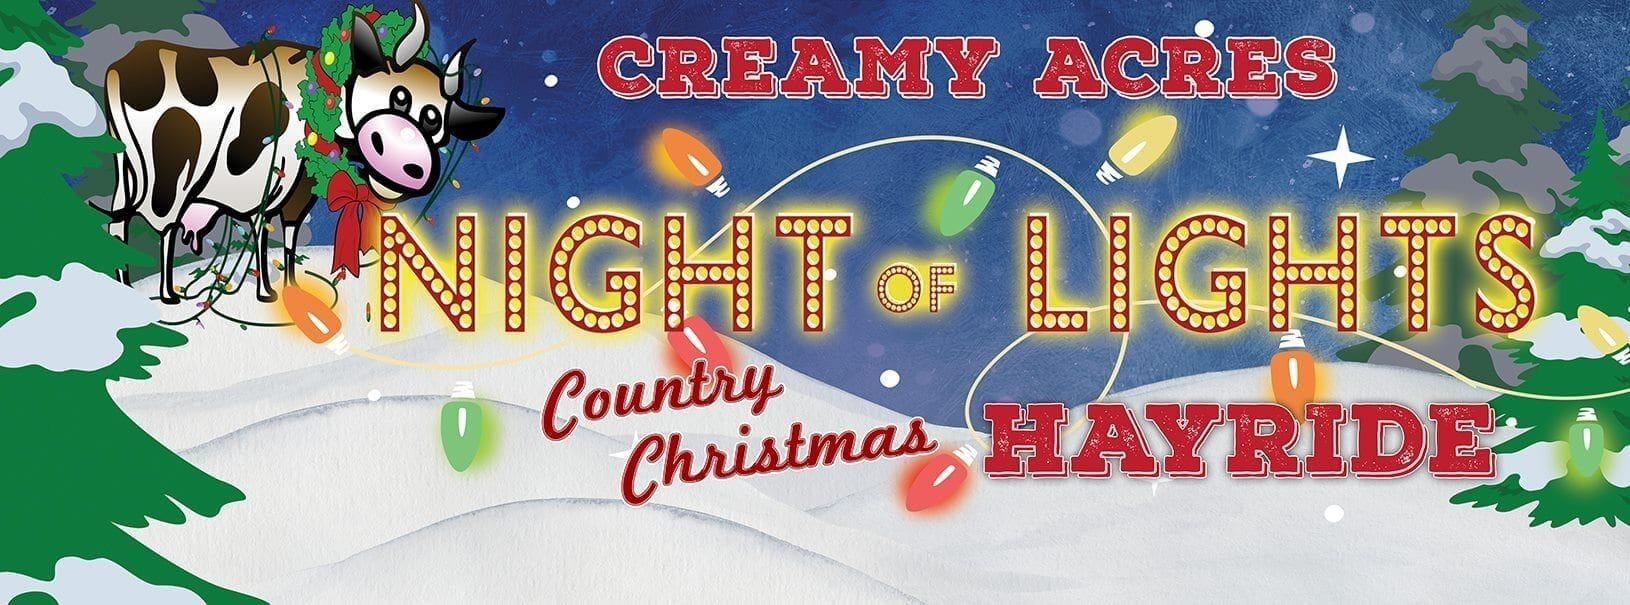 "creamy acres logo reading ""night of lights country christmas hayride"""